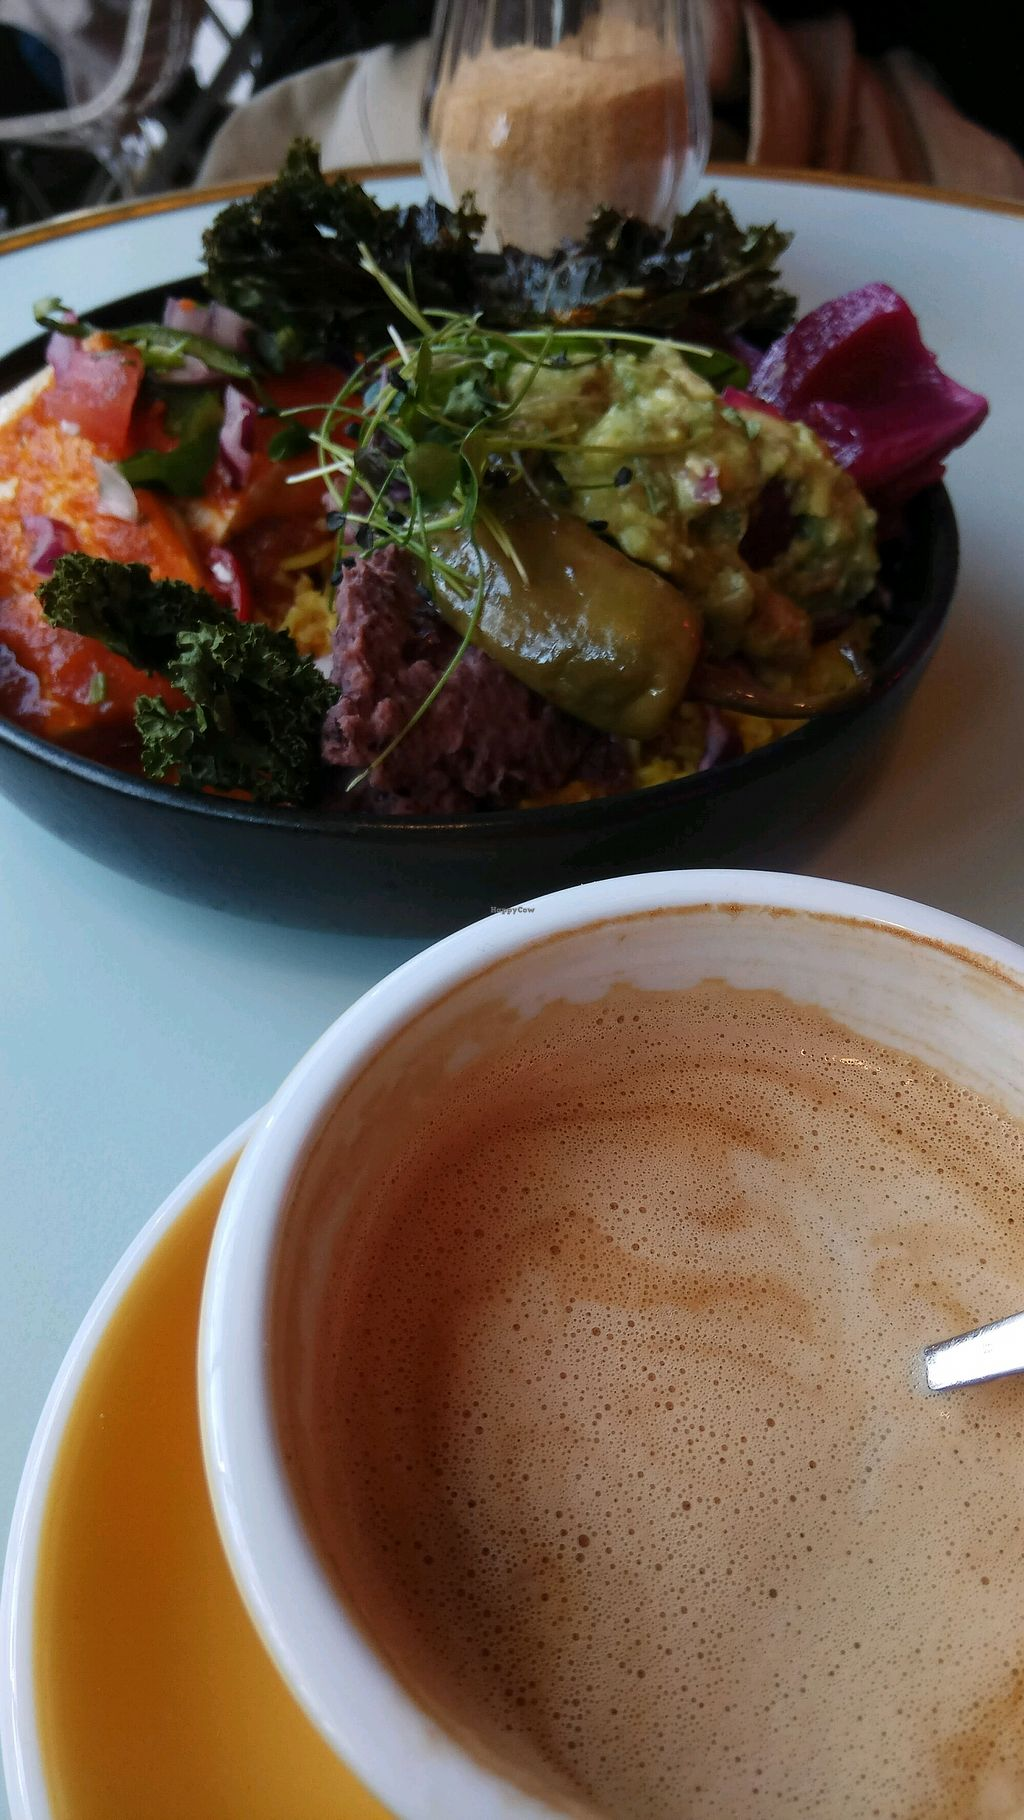 "Photo of Republique of Coffee  by <a href=""/members/profile/Kthr"">Kthr</a> <br/>Vegan rancheros  <br/> November 26, 2017  - <a href='/contact/abuse/image/103720/329344'>Report</a>"